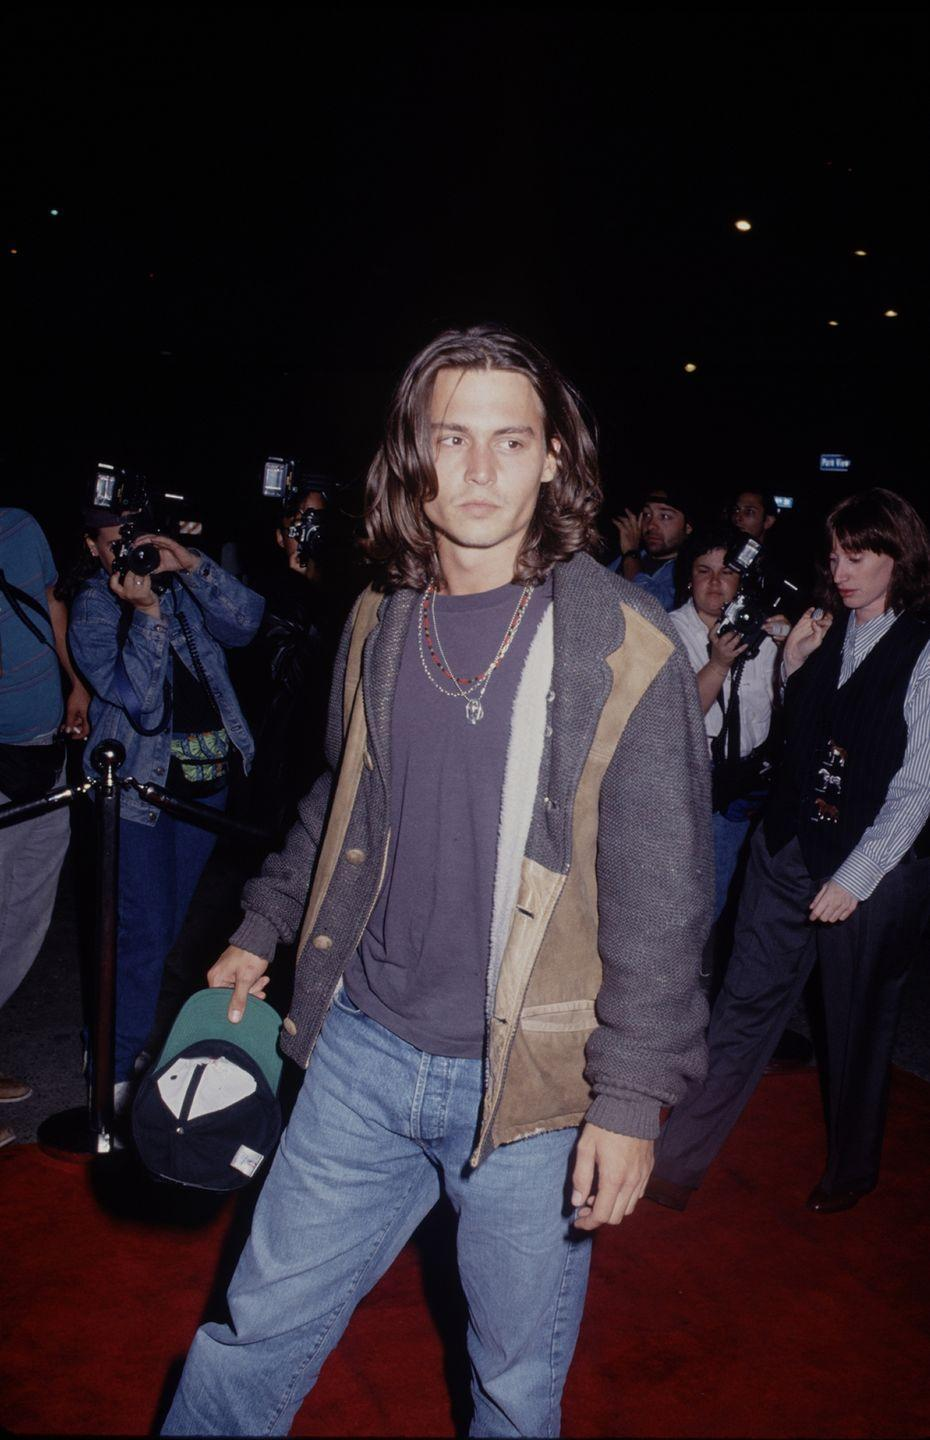 <p>Long before his <em>Pirates of the Caribbean </em>days, Johnny Depp opted for a longer cut. The actor (who had just begun to date Winona Ryder around this time) was known for his shaggy look, but grew it out to new lengths in the 1990. </p>